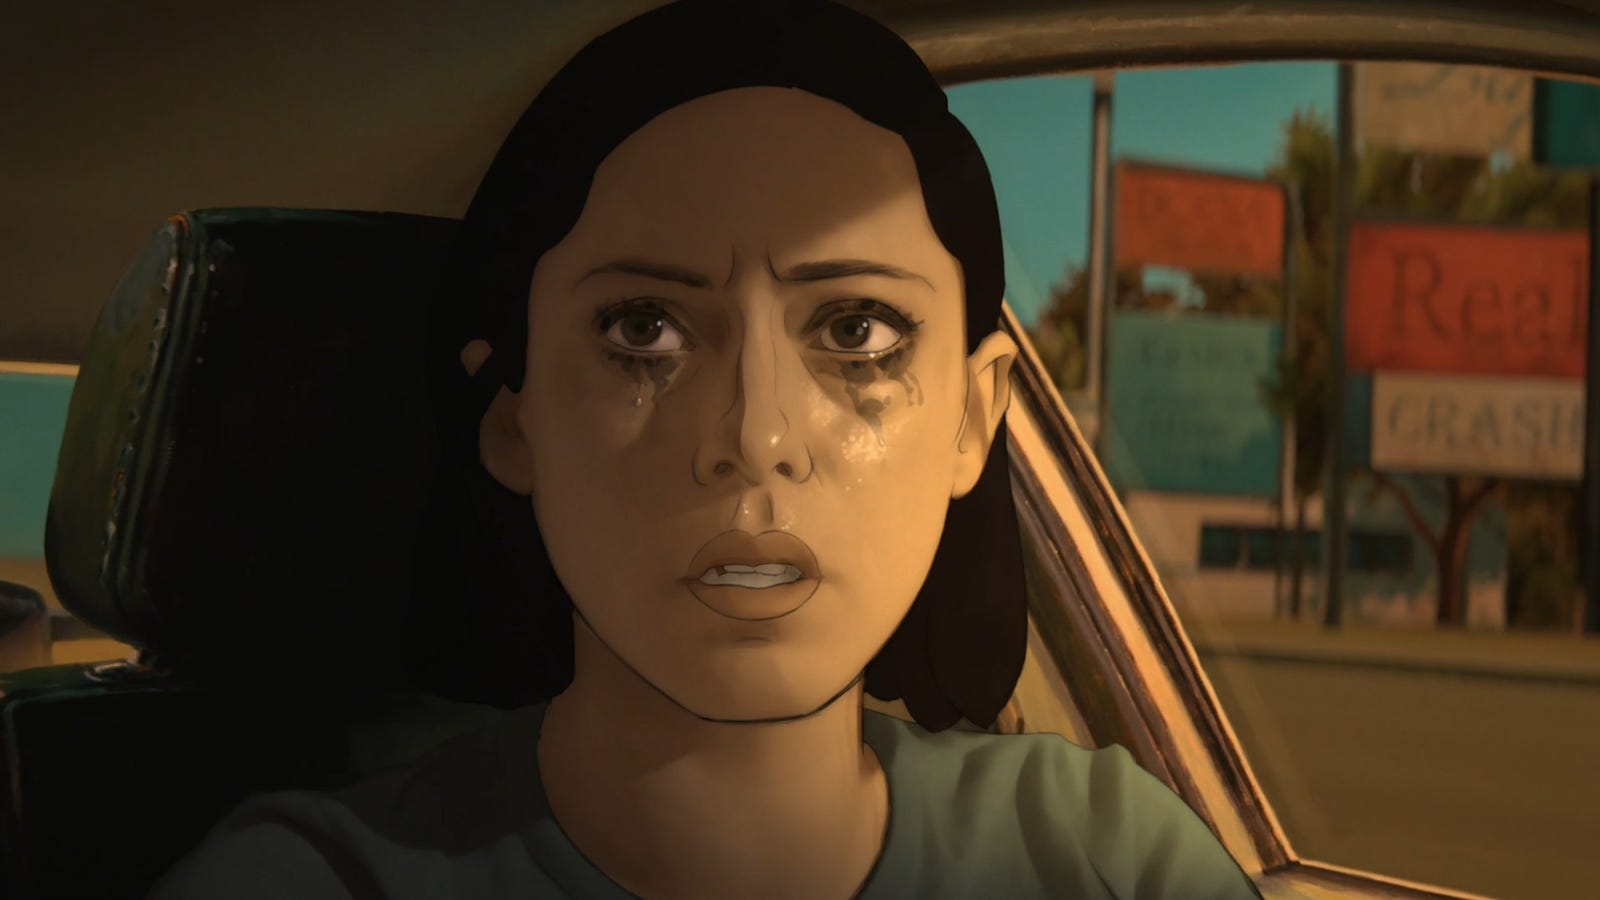 Reality comes Undone in exquisite new series from BoJack Horseman team